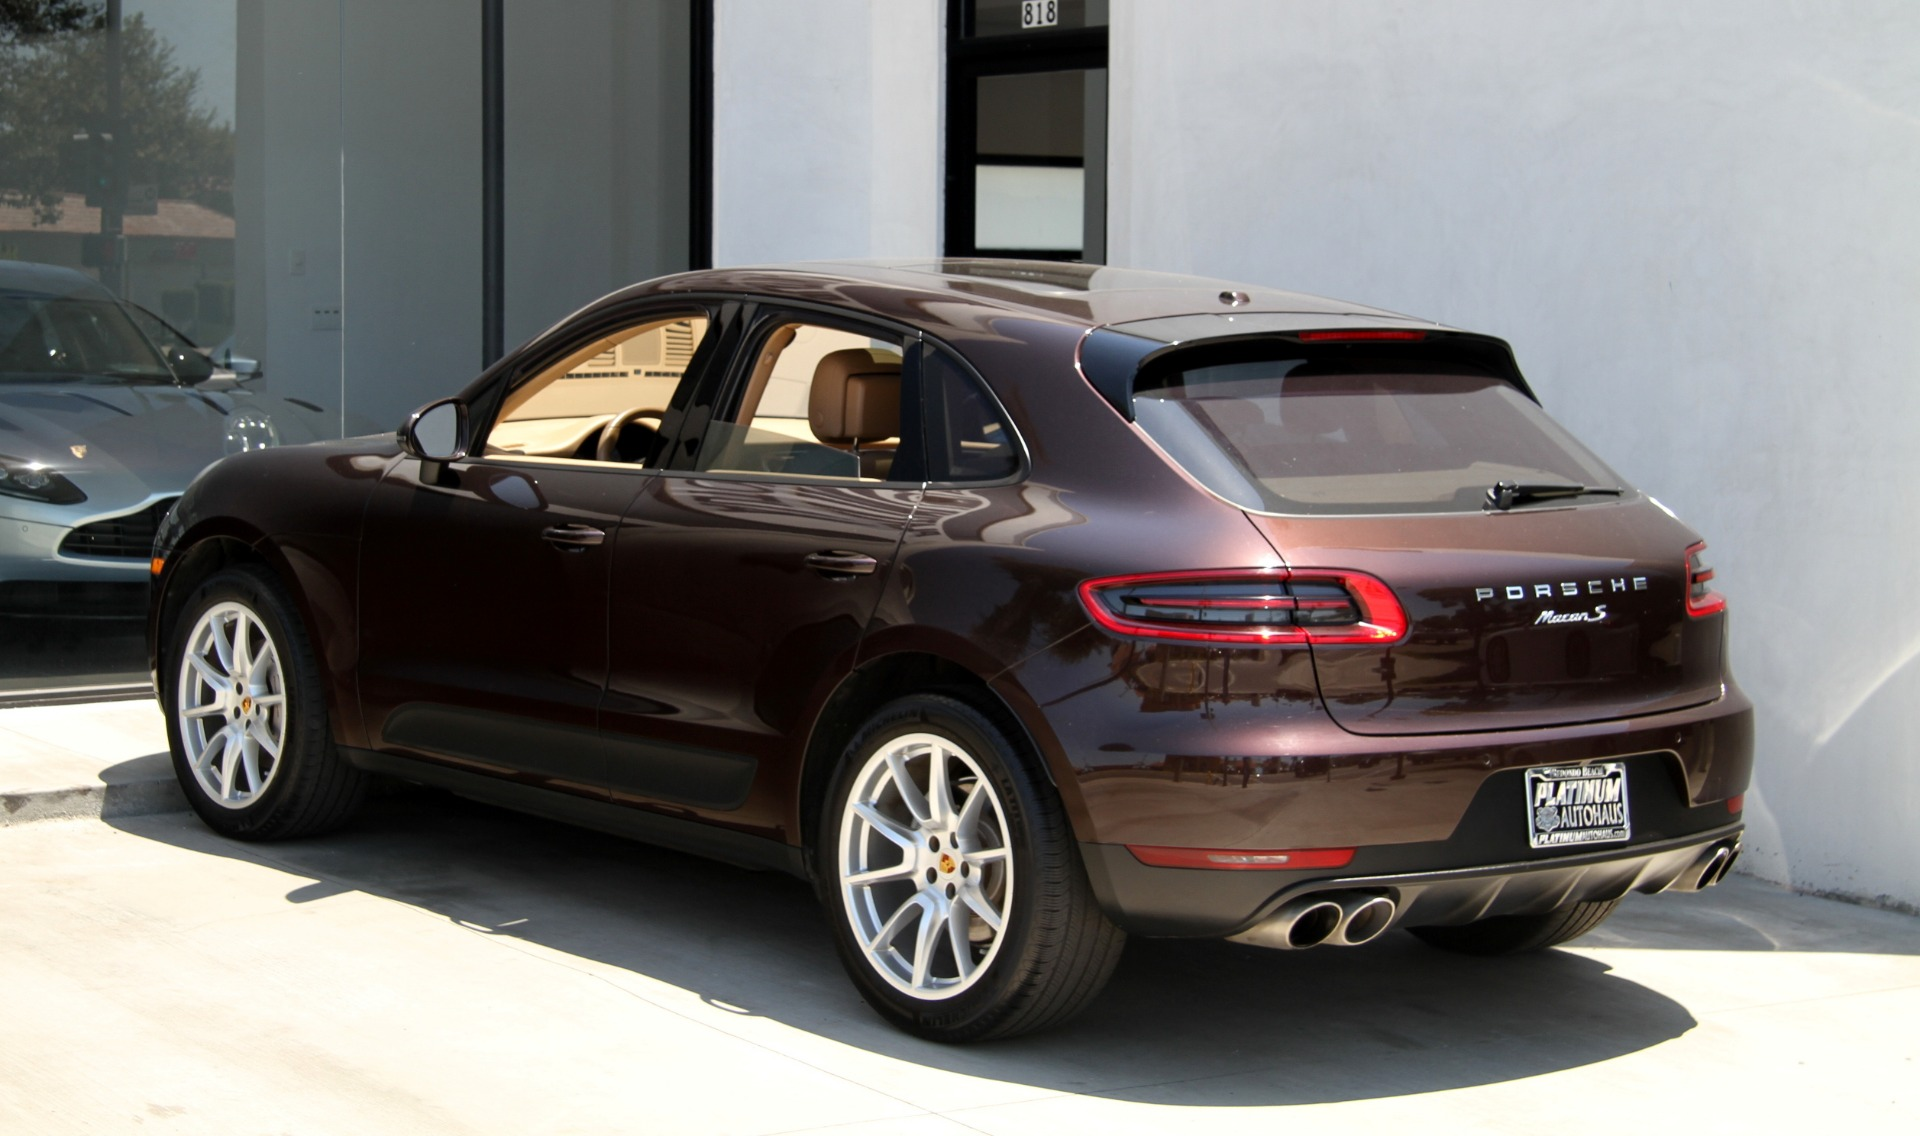 Vehicles For Sale Near Me >> 2015 Porsche Macan S Stock # 6221 for sale near Redondo Beach, CA | CA Porsche Dealer